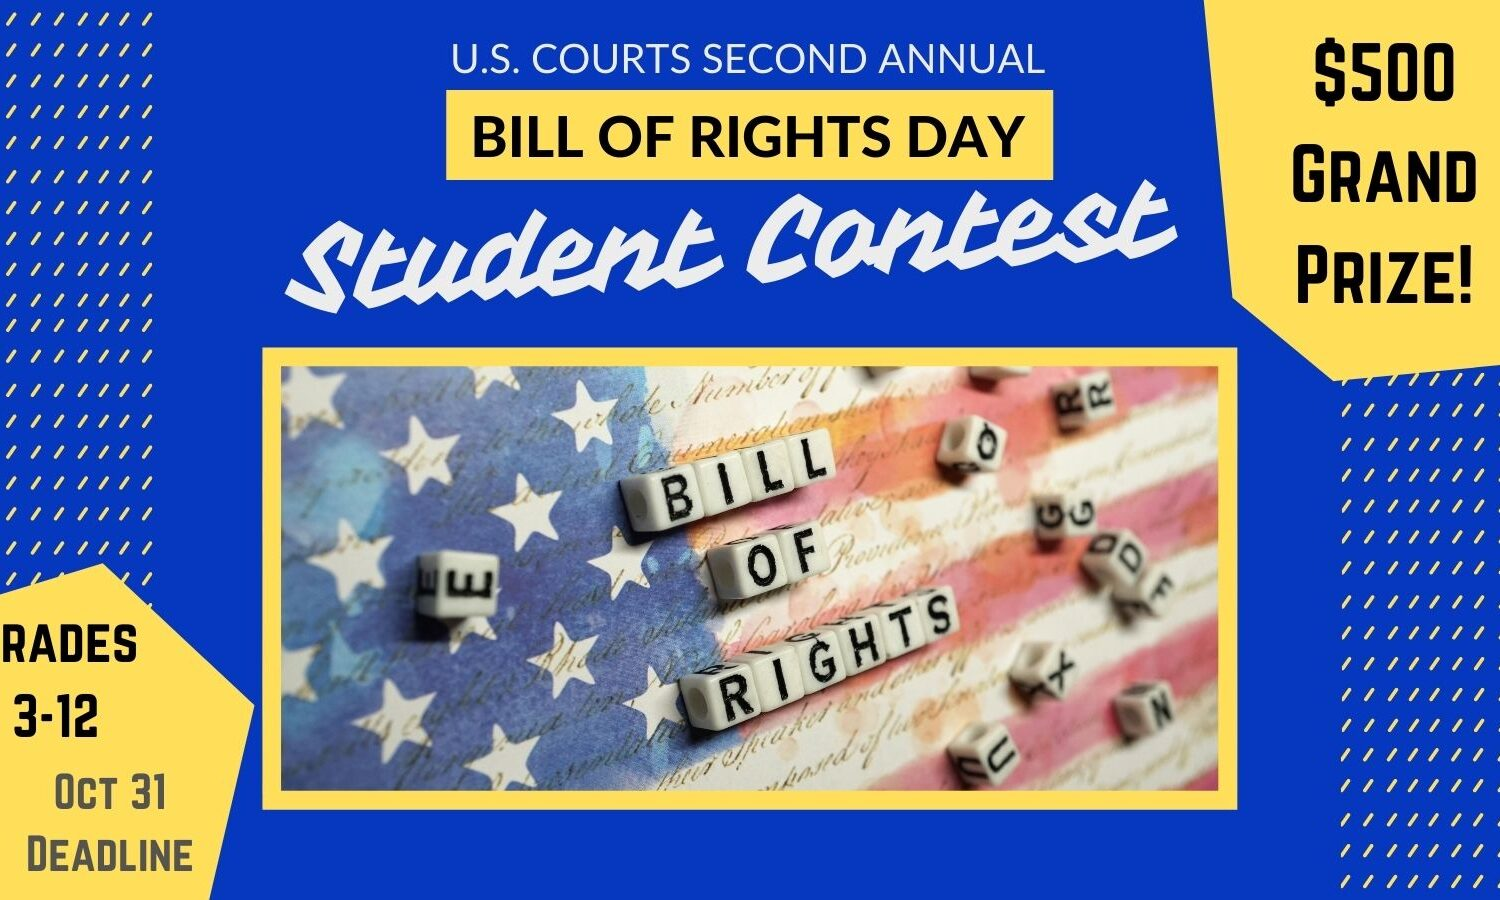 Bill Of Rights Day 2021 Student Contest